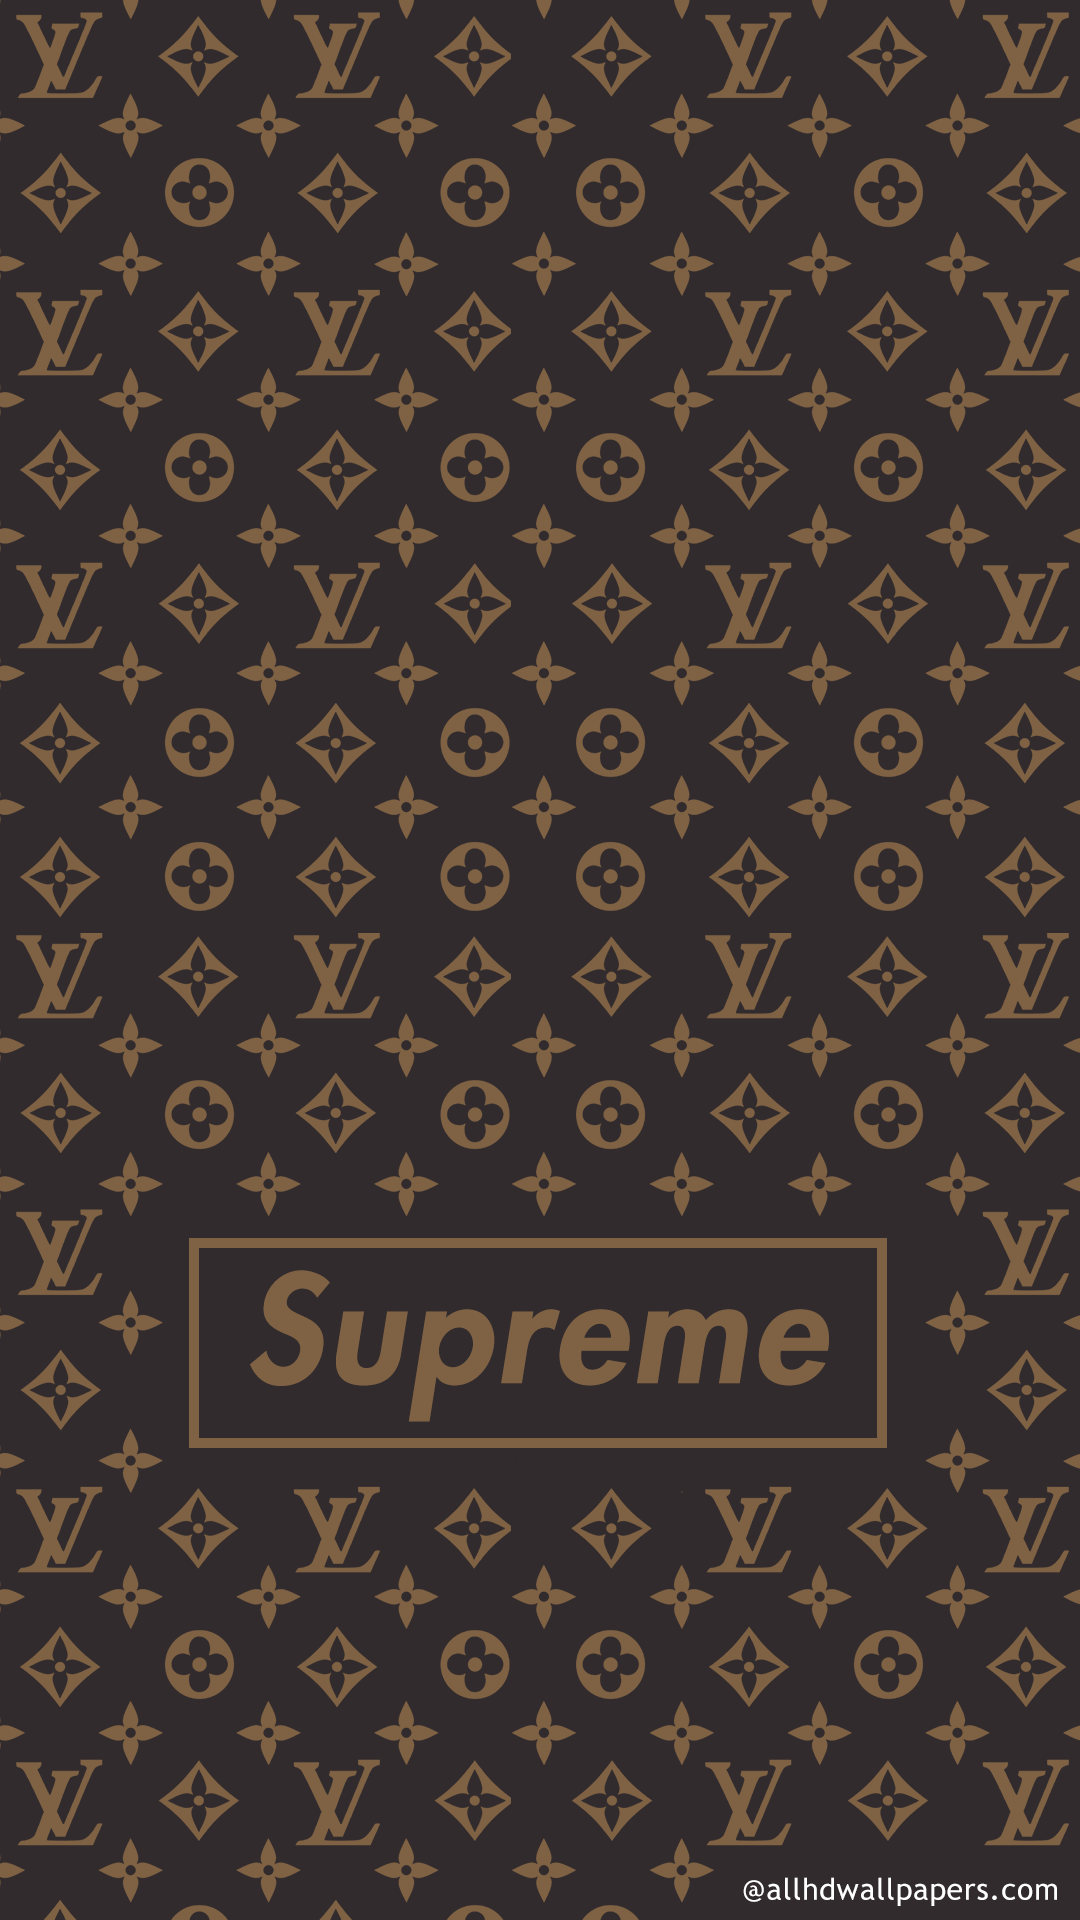 Hd Supreme Wallpaper   impremedianet 1080x1920